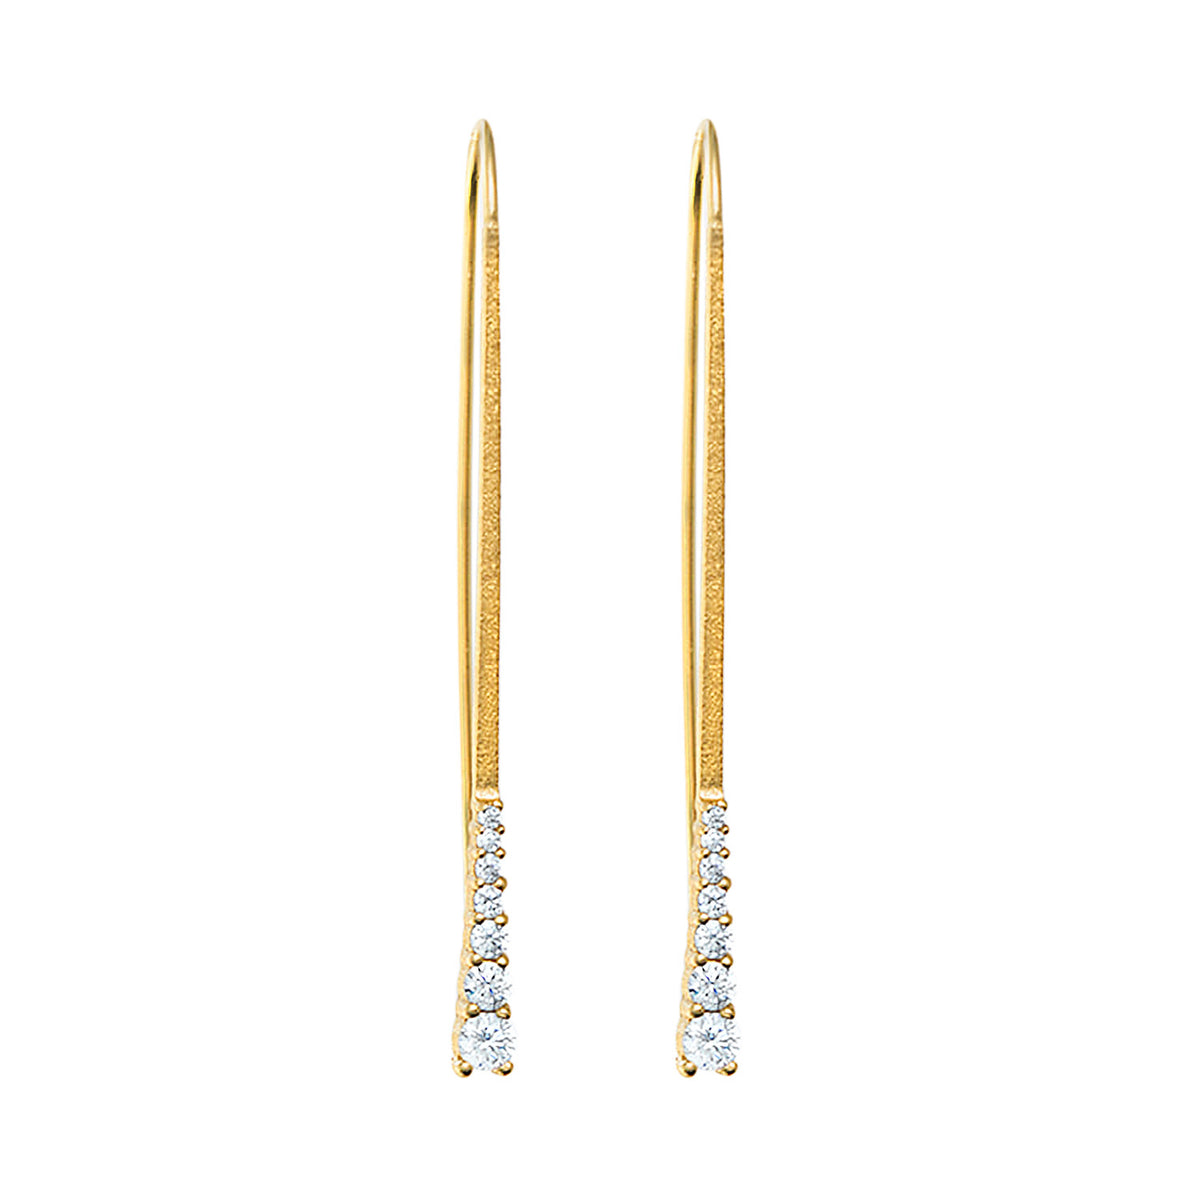 18k Gold Vermeil Earrings